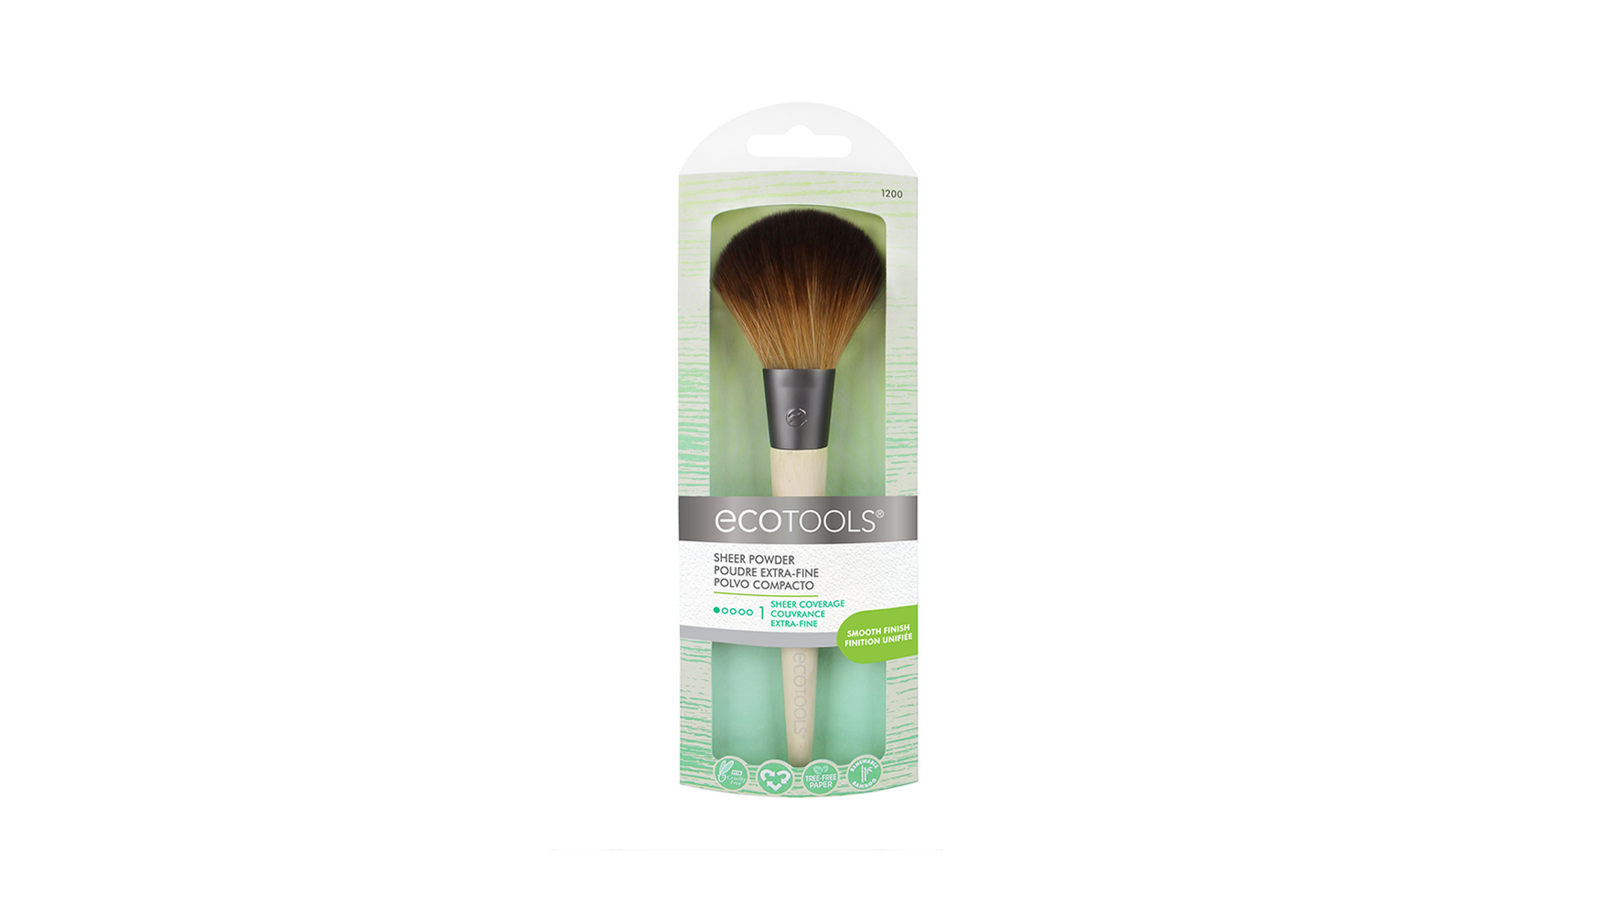 The EcoTools Bamboo Powder brush picks up just the right amount of product for a polished complexion that doesn't look powdery or too 'overdone'.